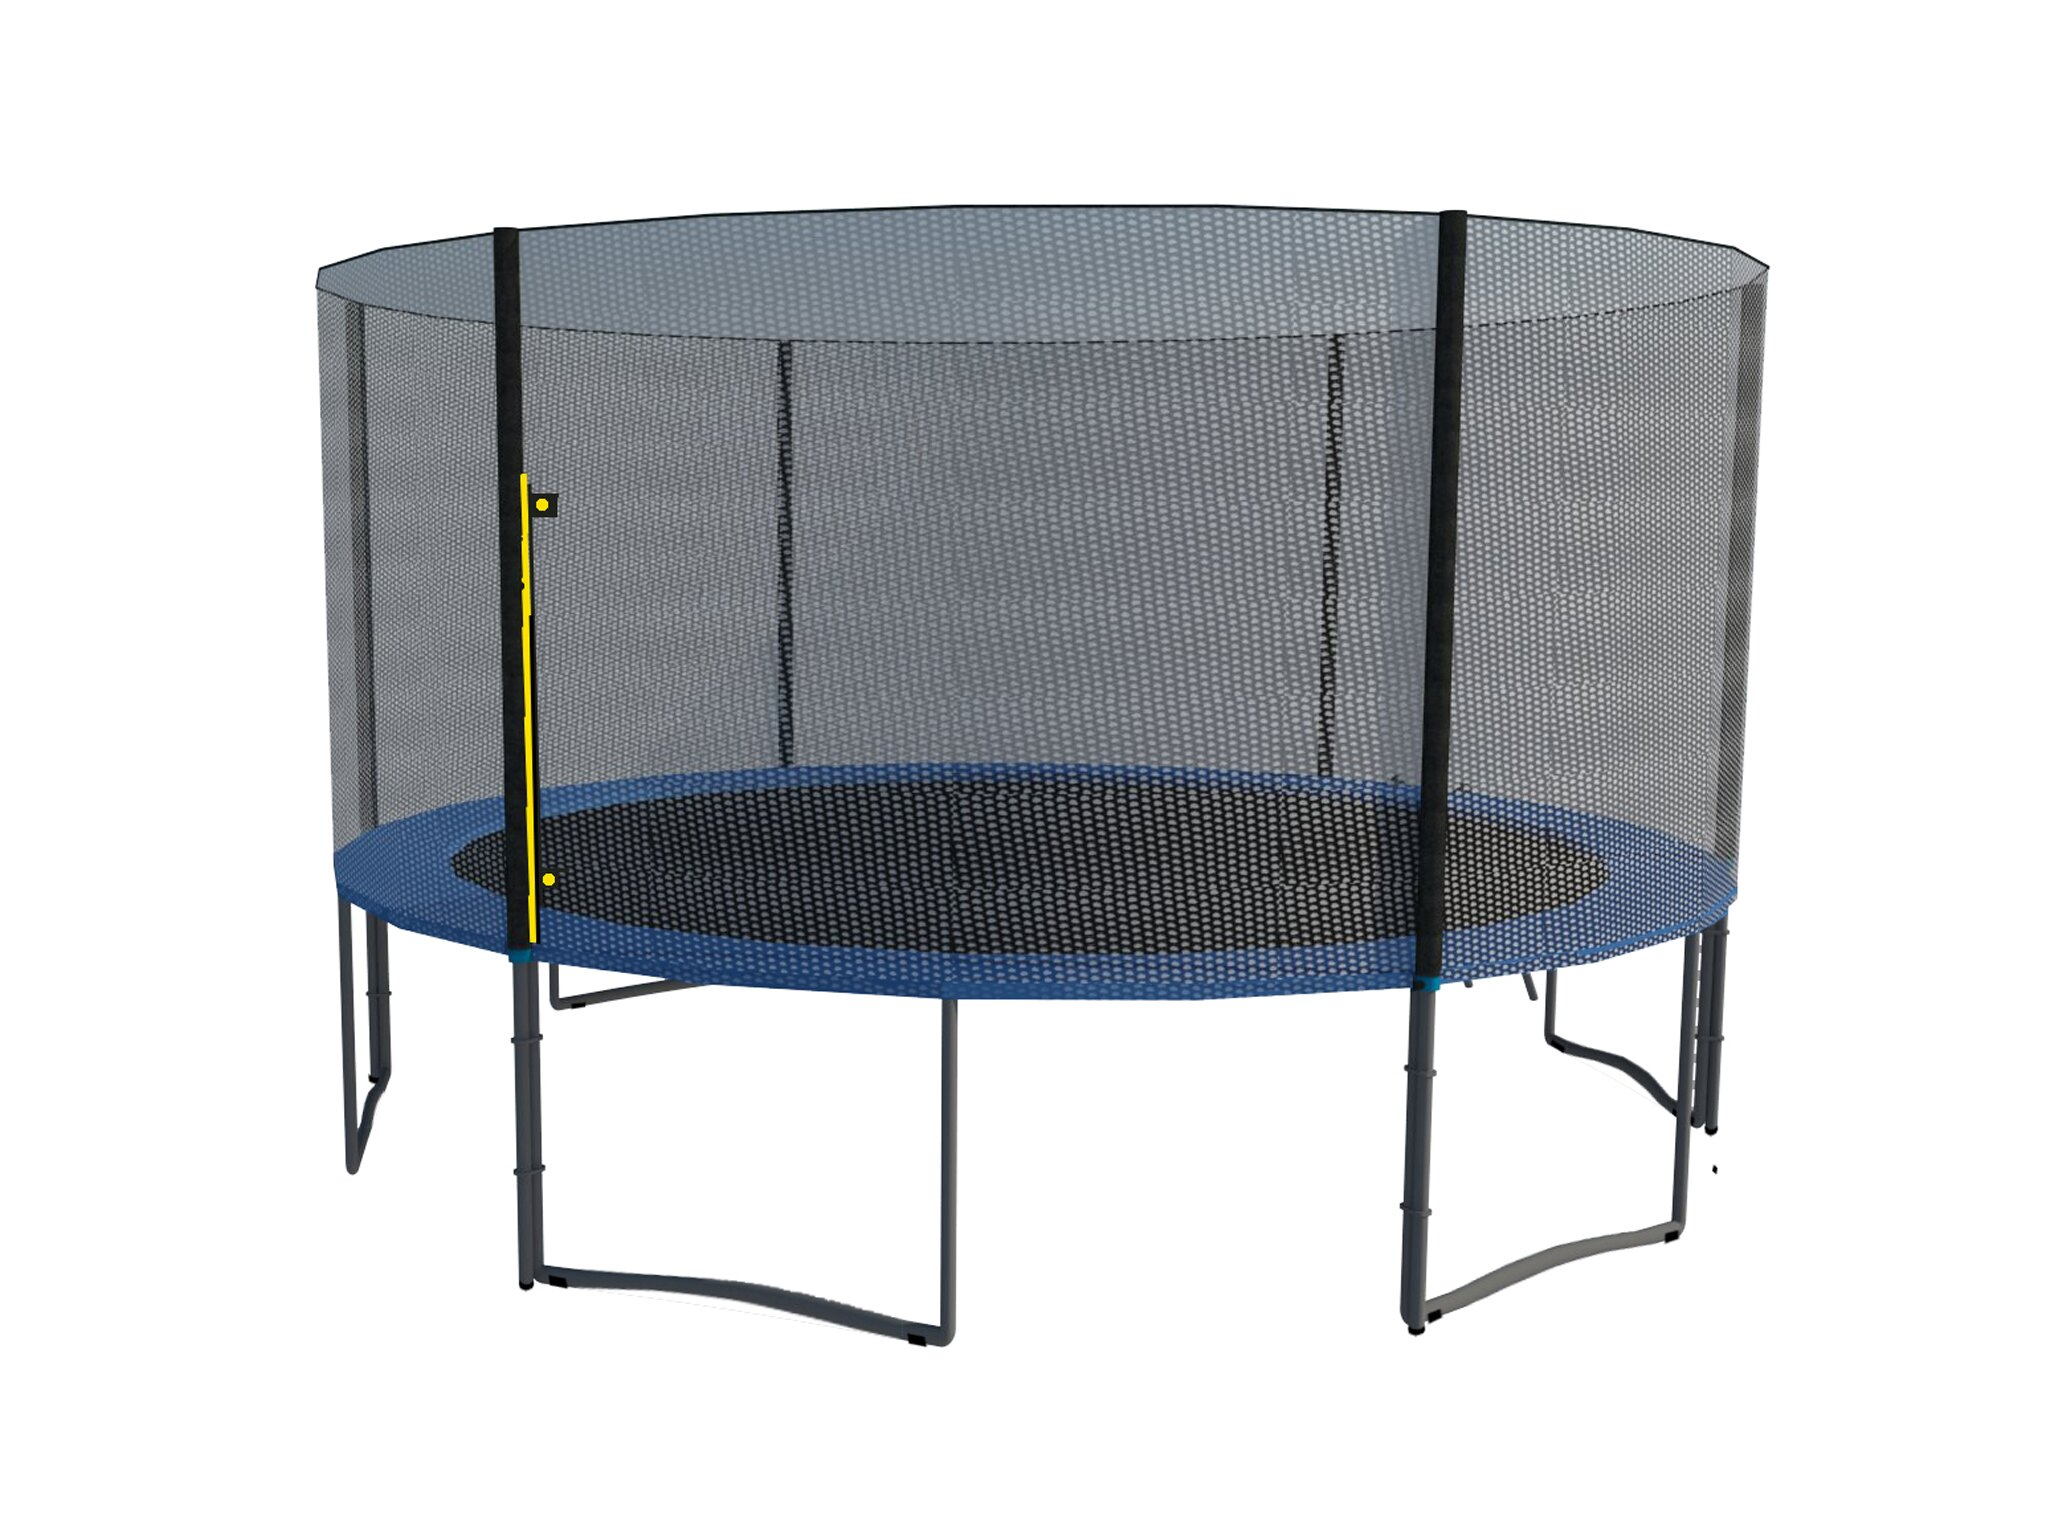 ExacMe 12 FT 6W Legs Trampoline w/ safety pad & Enclosure Net & ladder COMBO T12 0